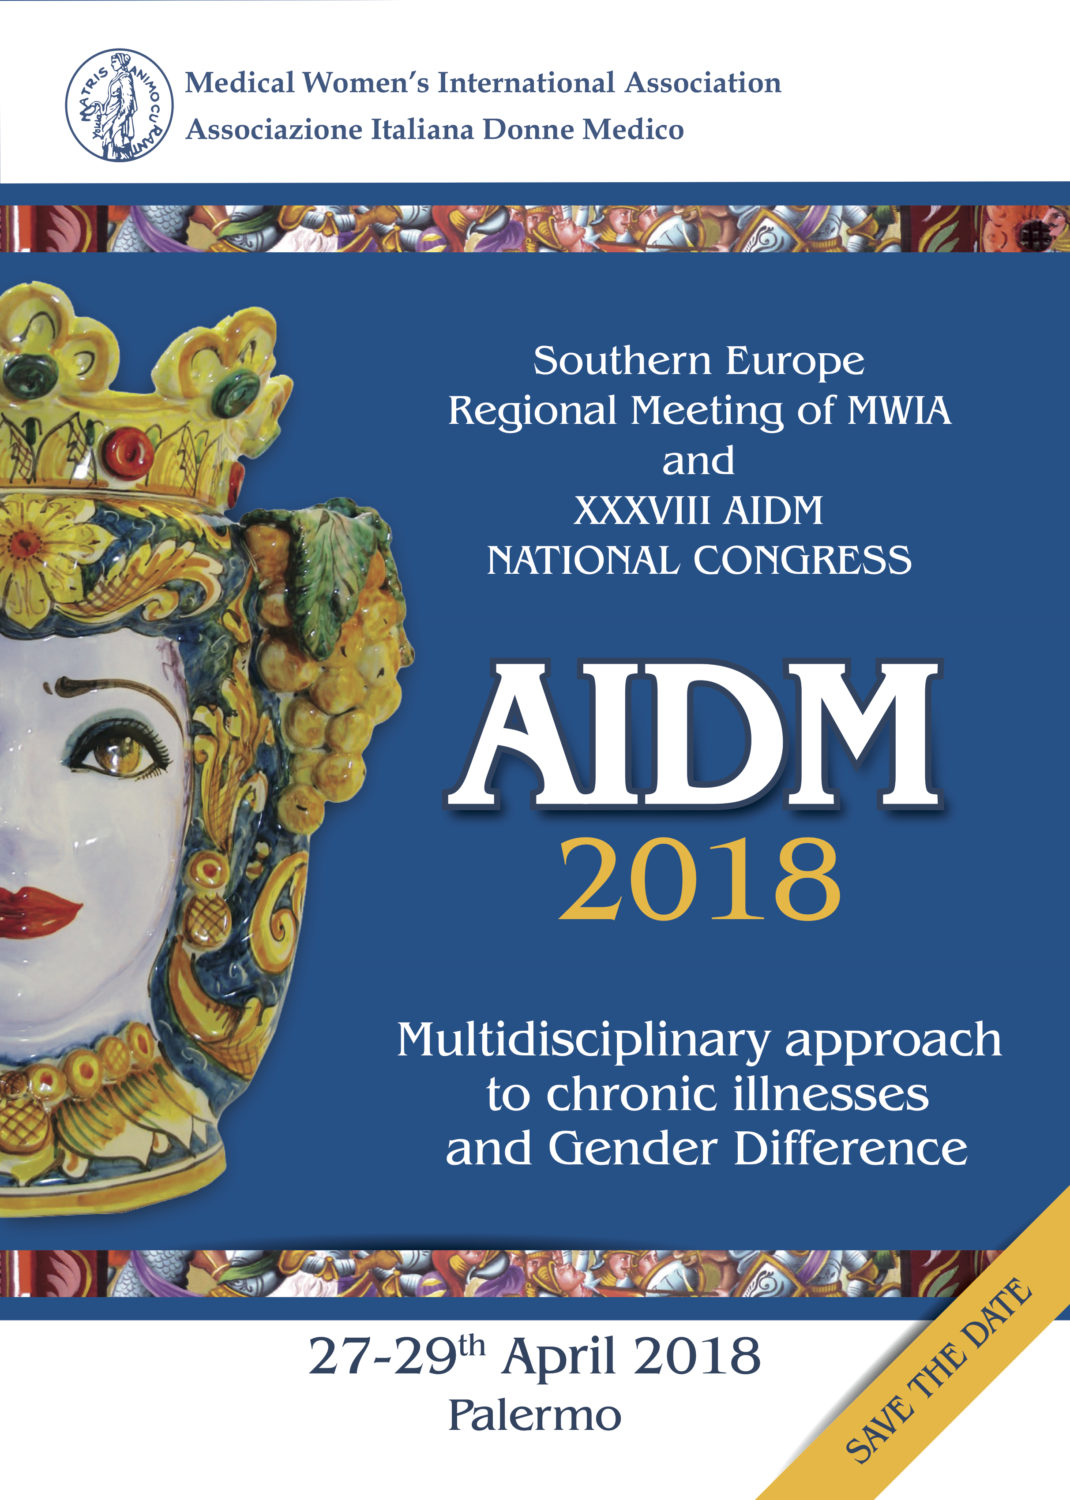 save the date - Southern Europe Regional Meeting of MWIA and XXXVIII AIDM NATIONAL CONGRESS 2018 Multidisciplinary approach to chronic illnesses and Gender Difference